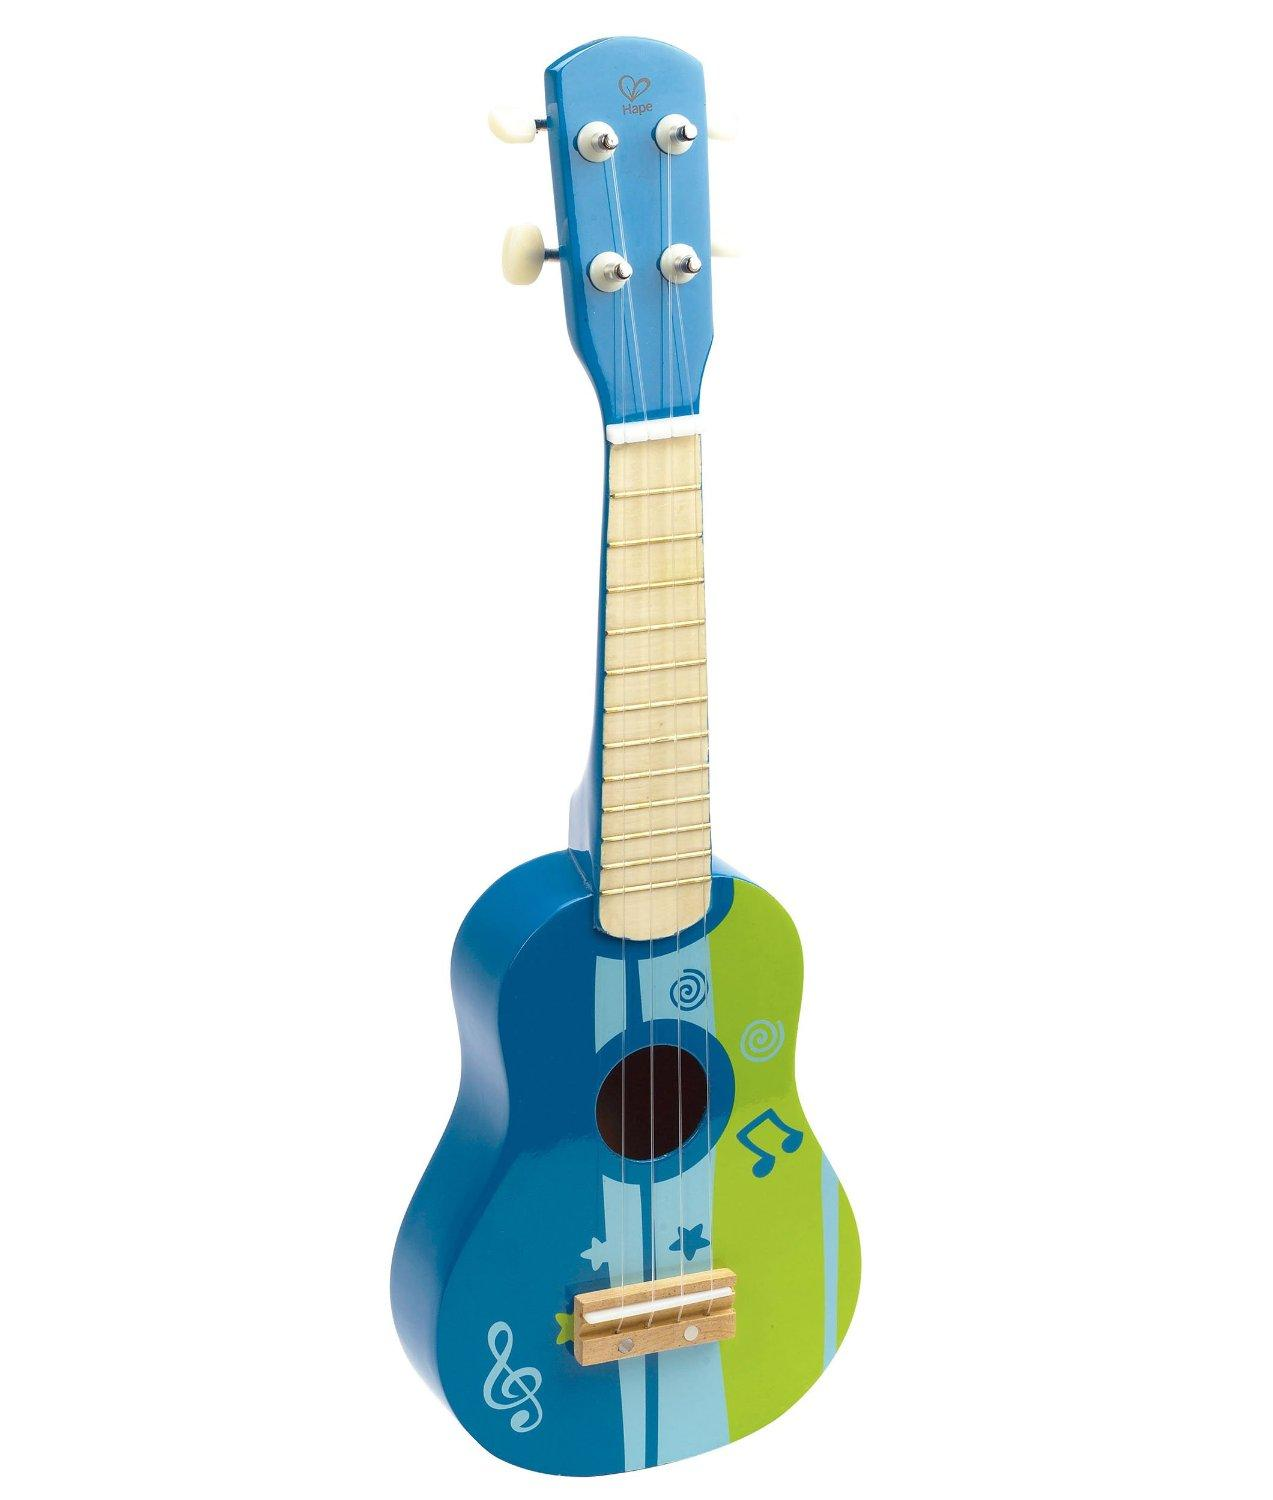 Hape - Early Melodies - Blue Ukulele Wooden Instrument